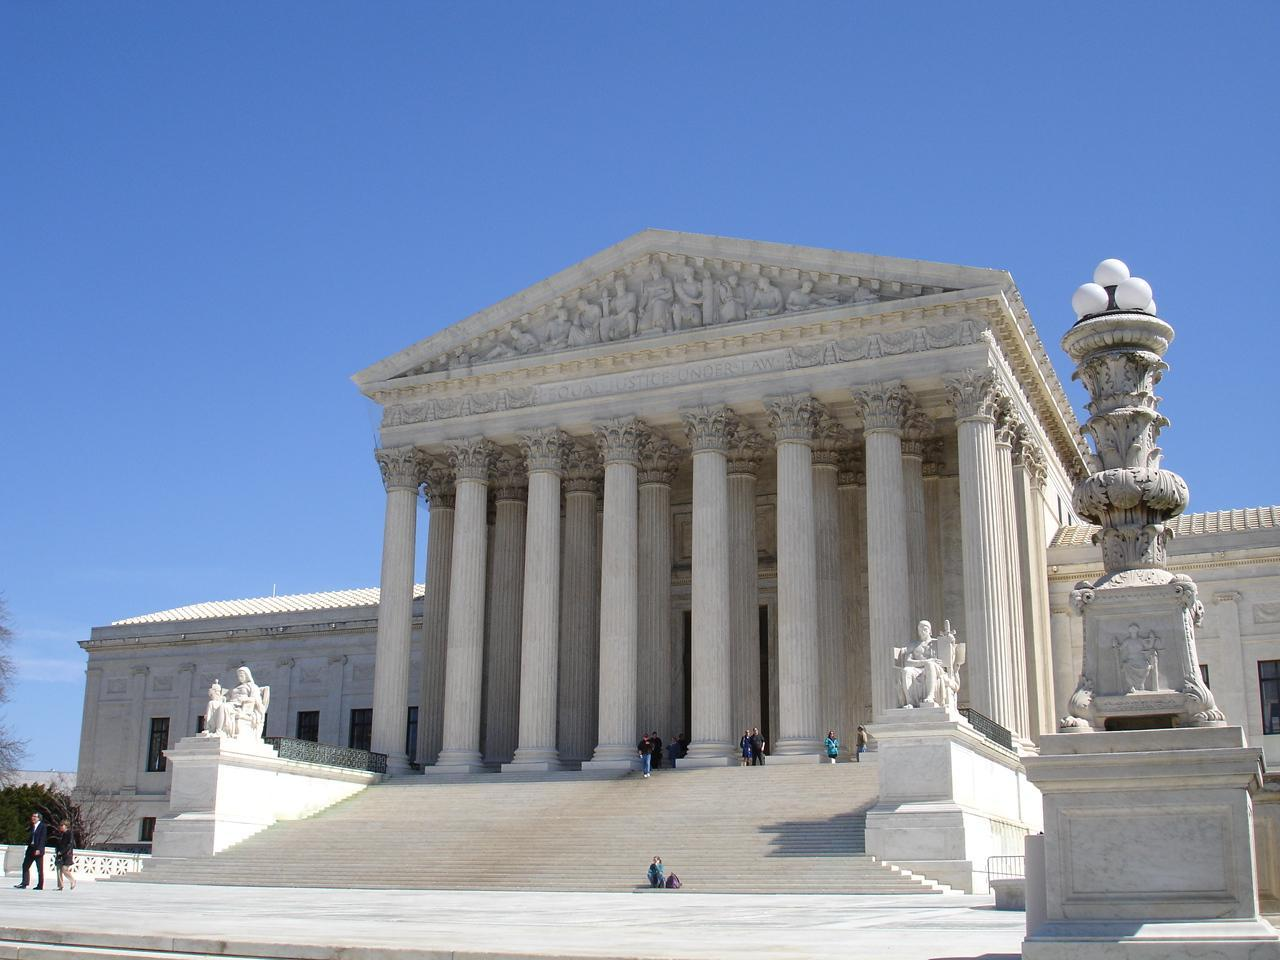 The Supreme Court, pictured here, seems reluctant to make a revolutionary decision regarding same-sex marriage.